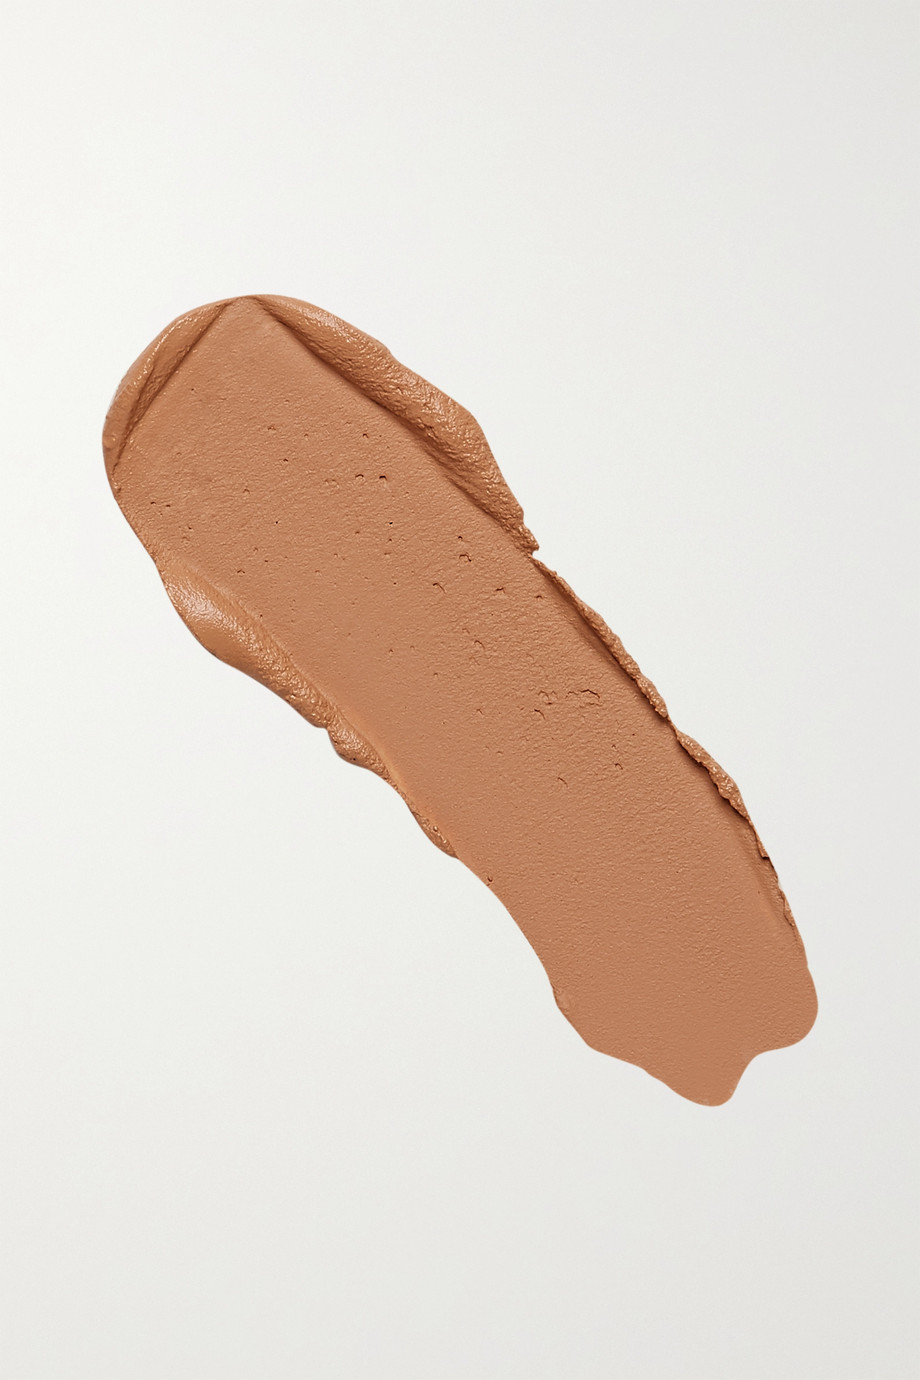 Kjaer Weis Invisible Touch Concealer - M230